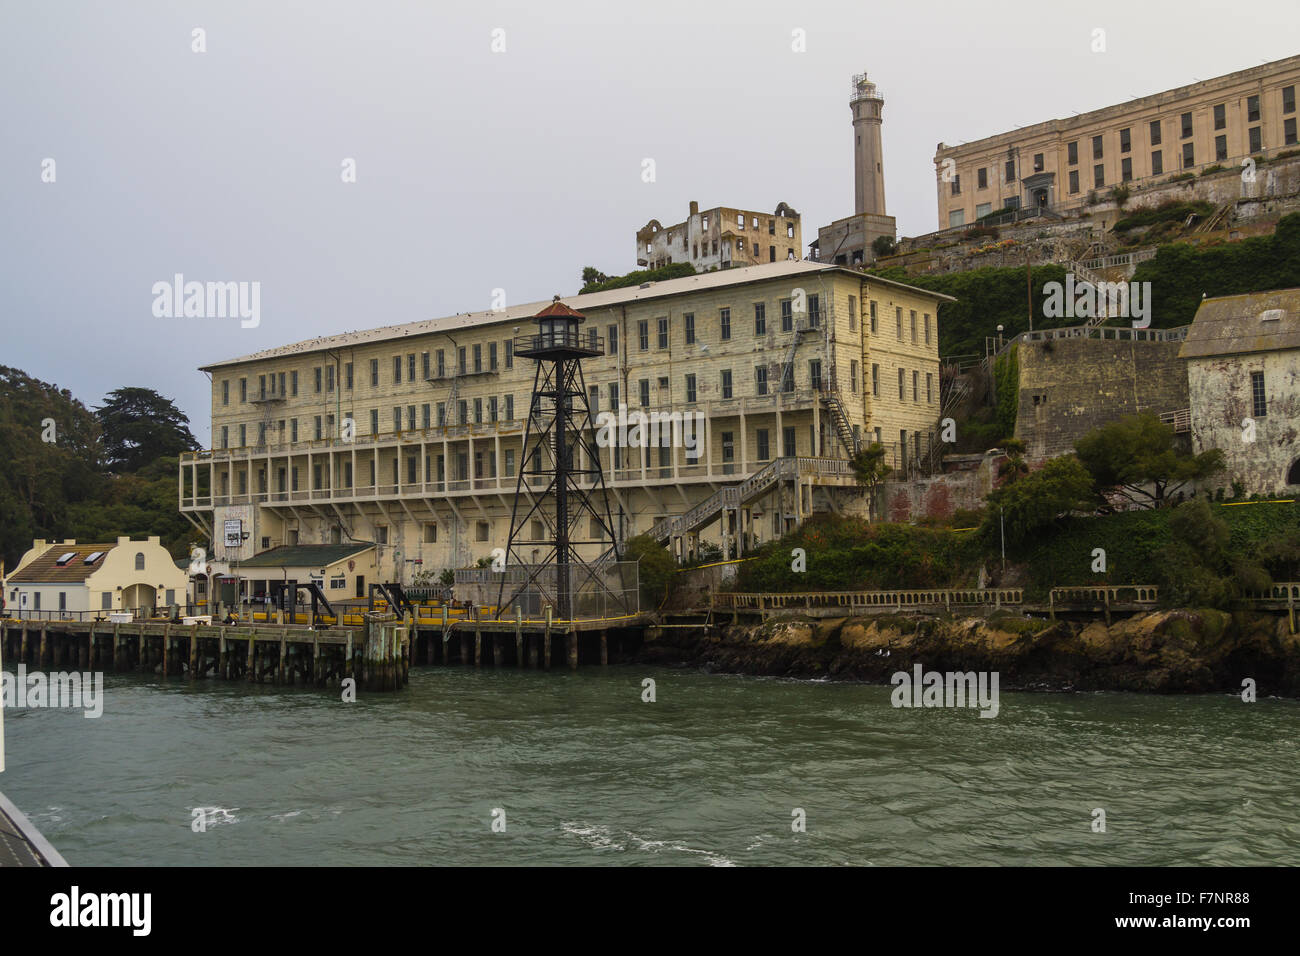 Arriving at Alcatraz Island in the evening, San Francisco - Stock Image